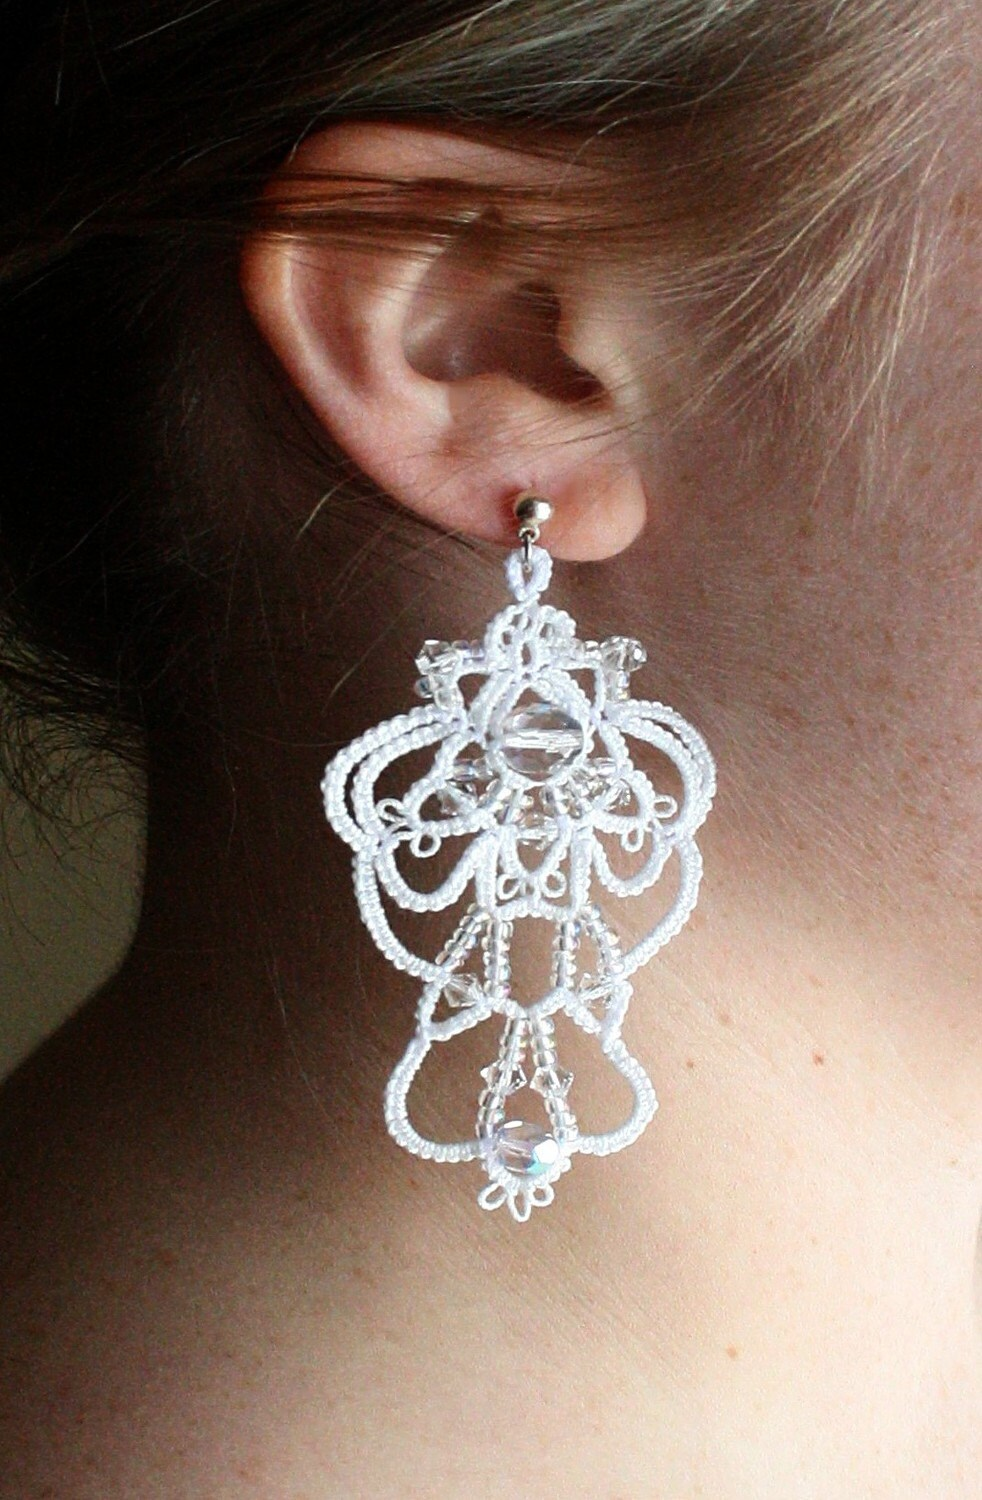 White crocheted earrings with crystals